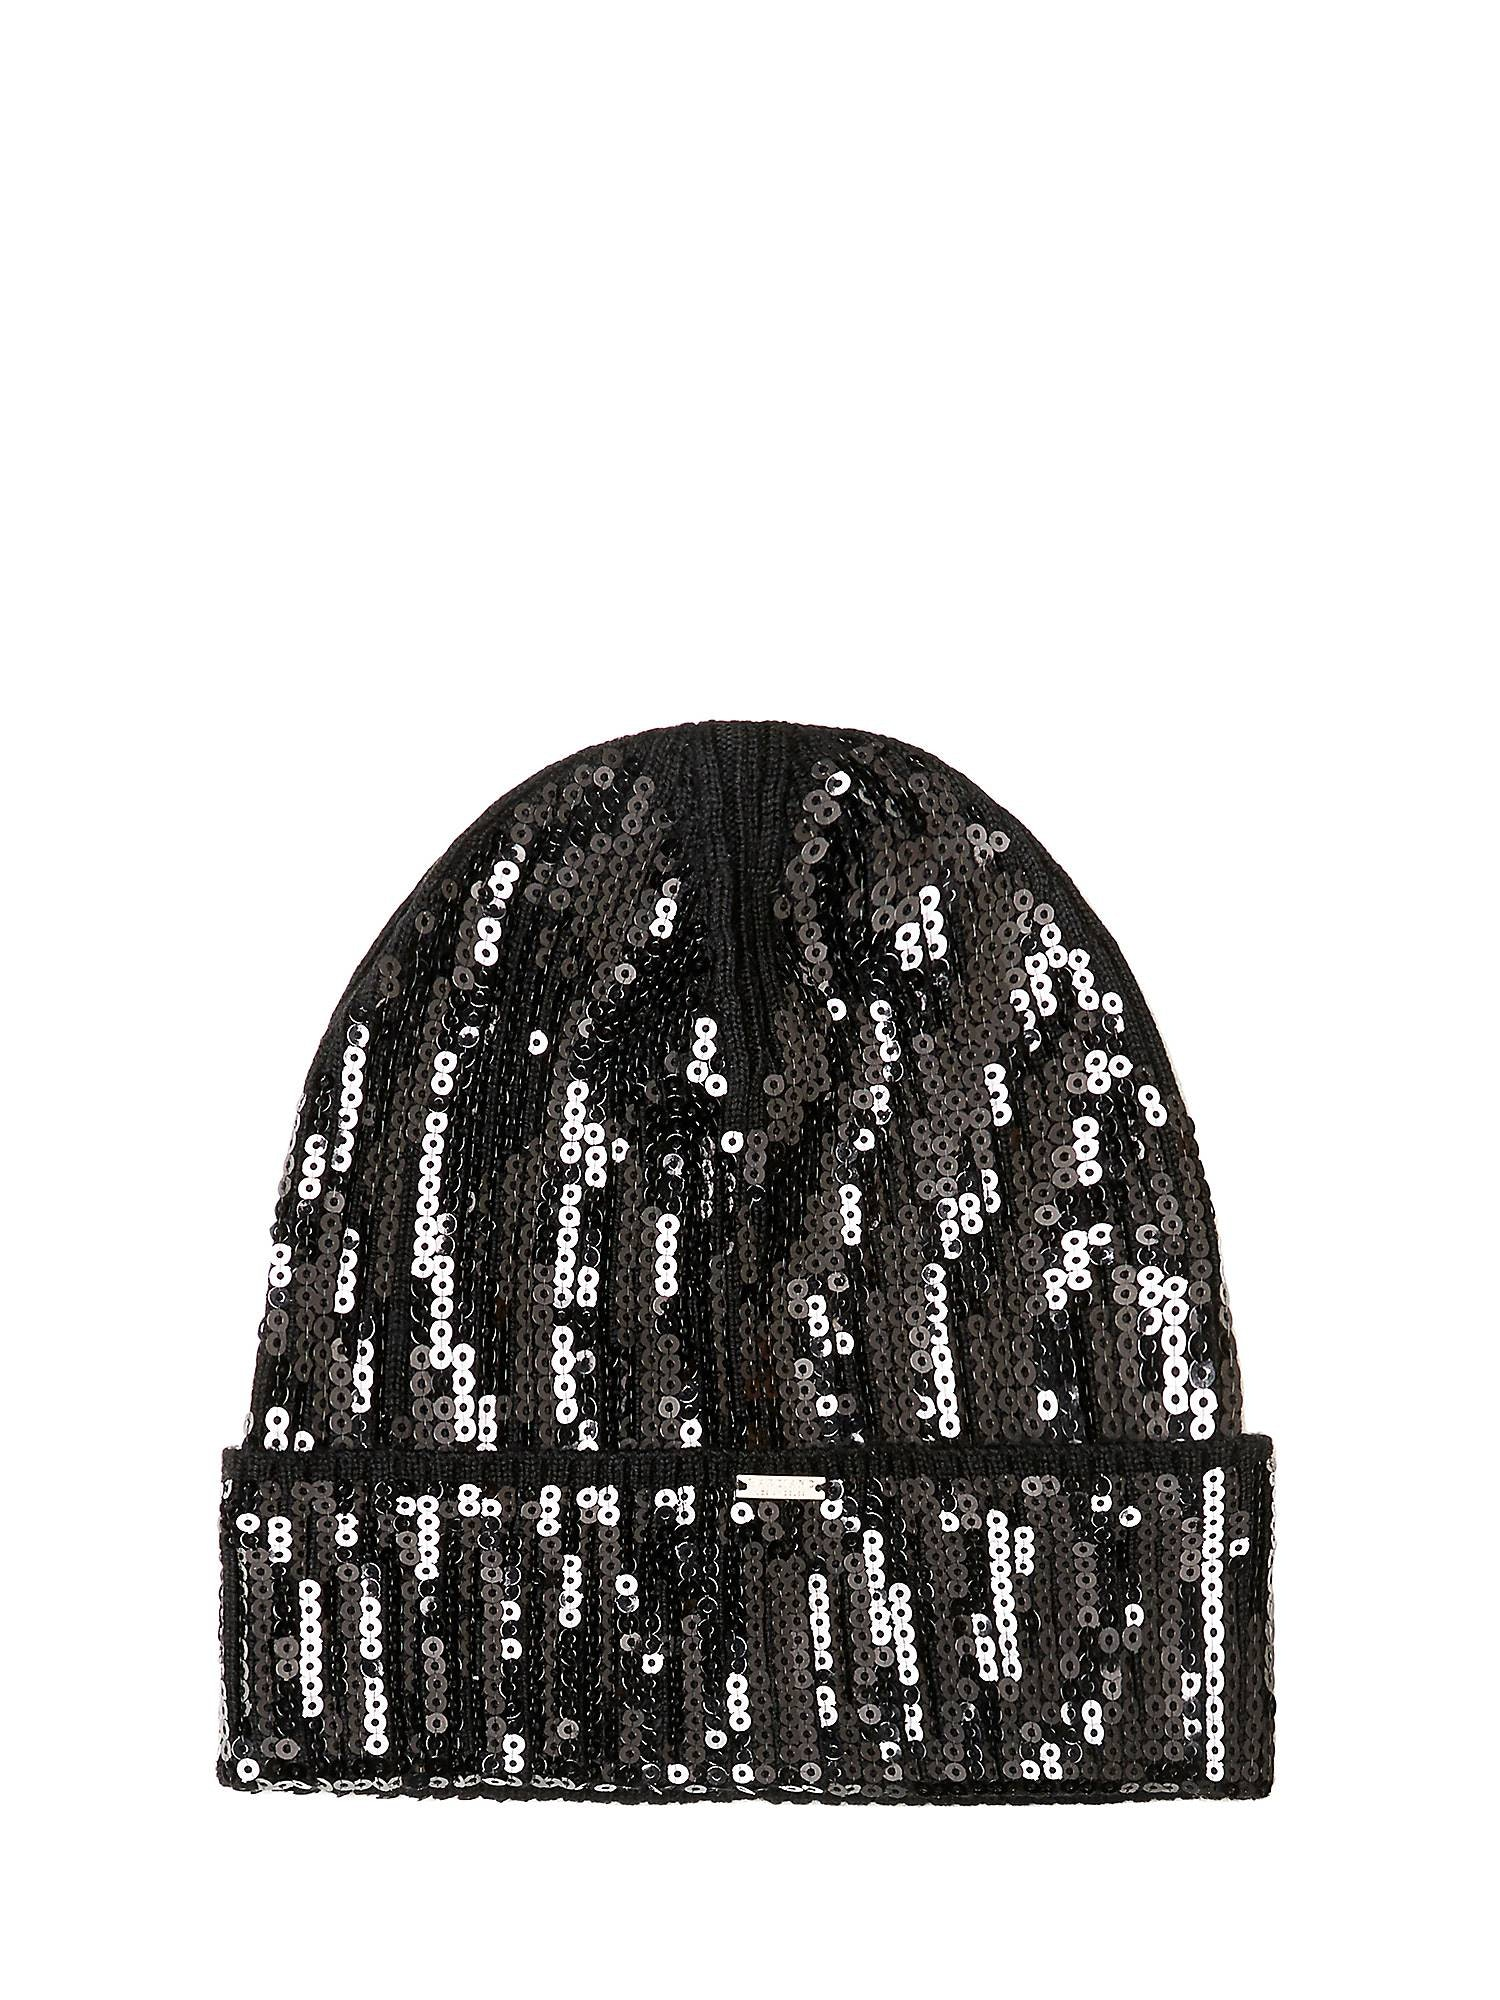 Guess_gorro com missangas_69€